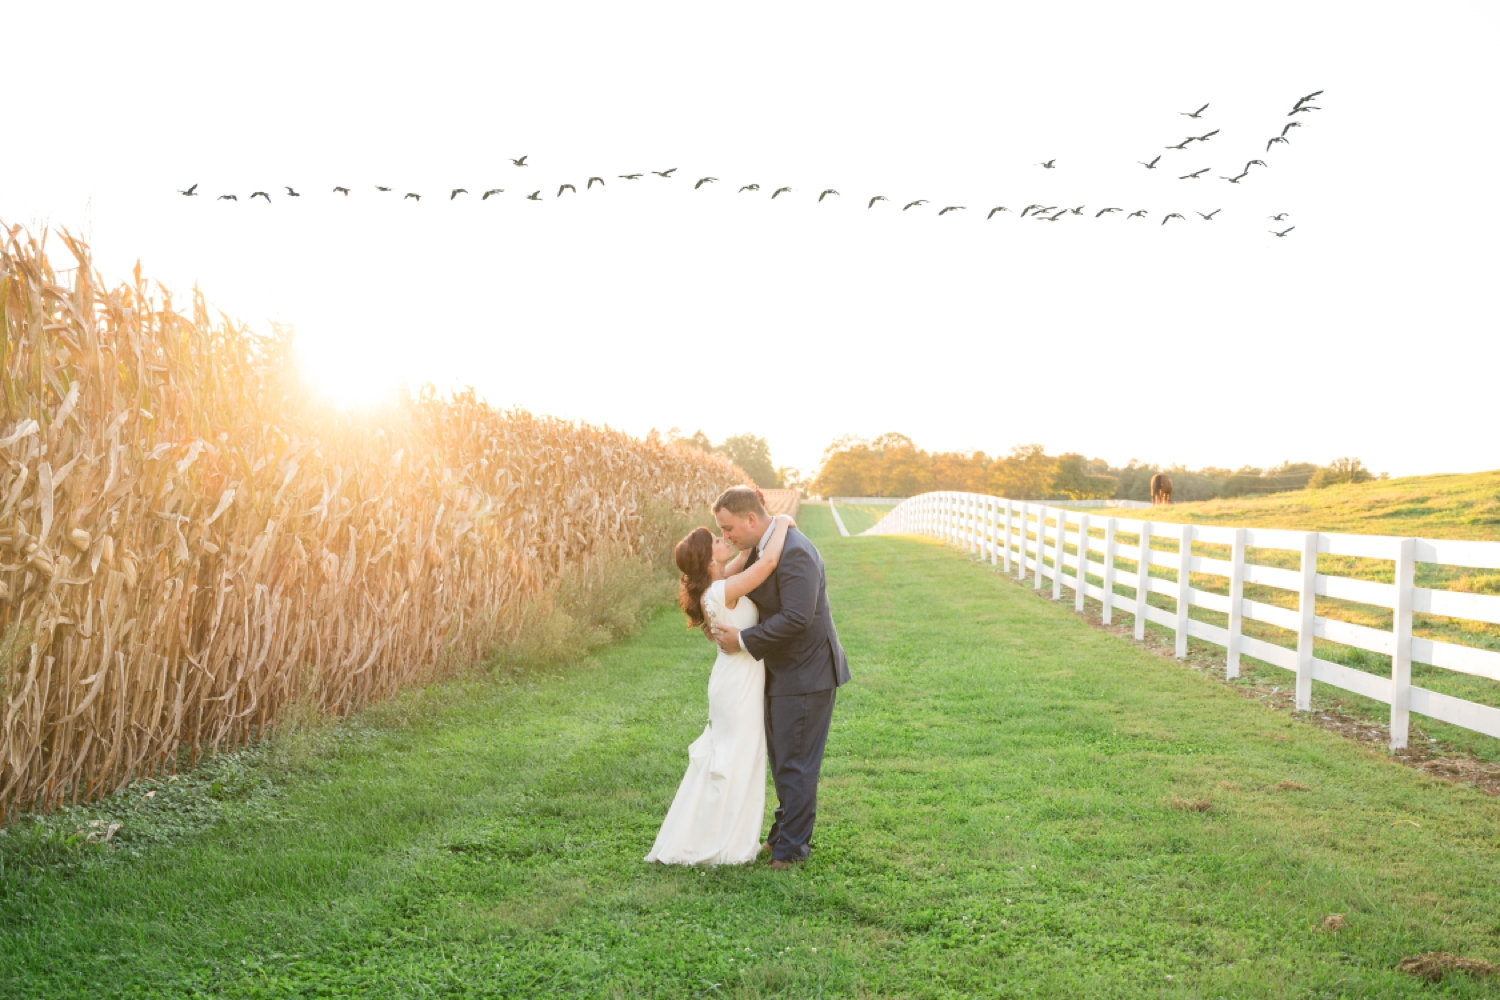 Tusculum Farm field and birds migration fall wedding photos